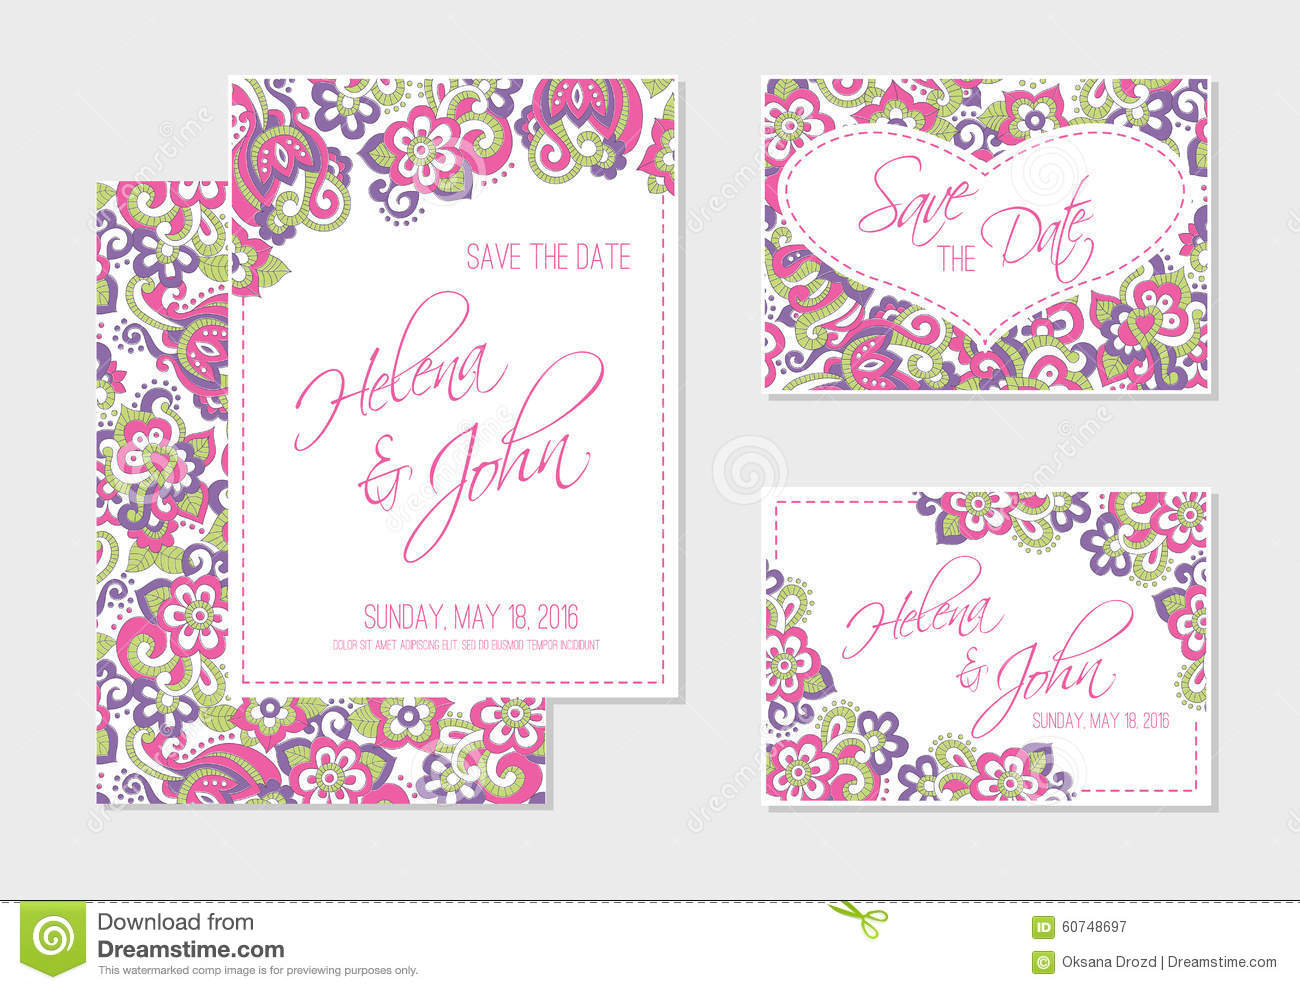 Set Of Wedding, Invitation Or Anniversary Cards With Colorful Floral  Background  Print Your Own Anniversary Card